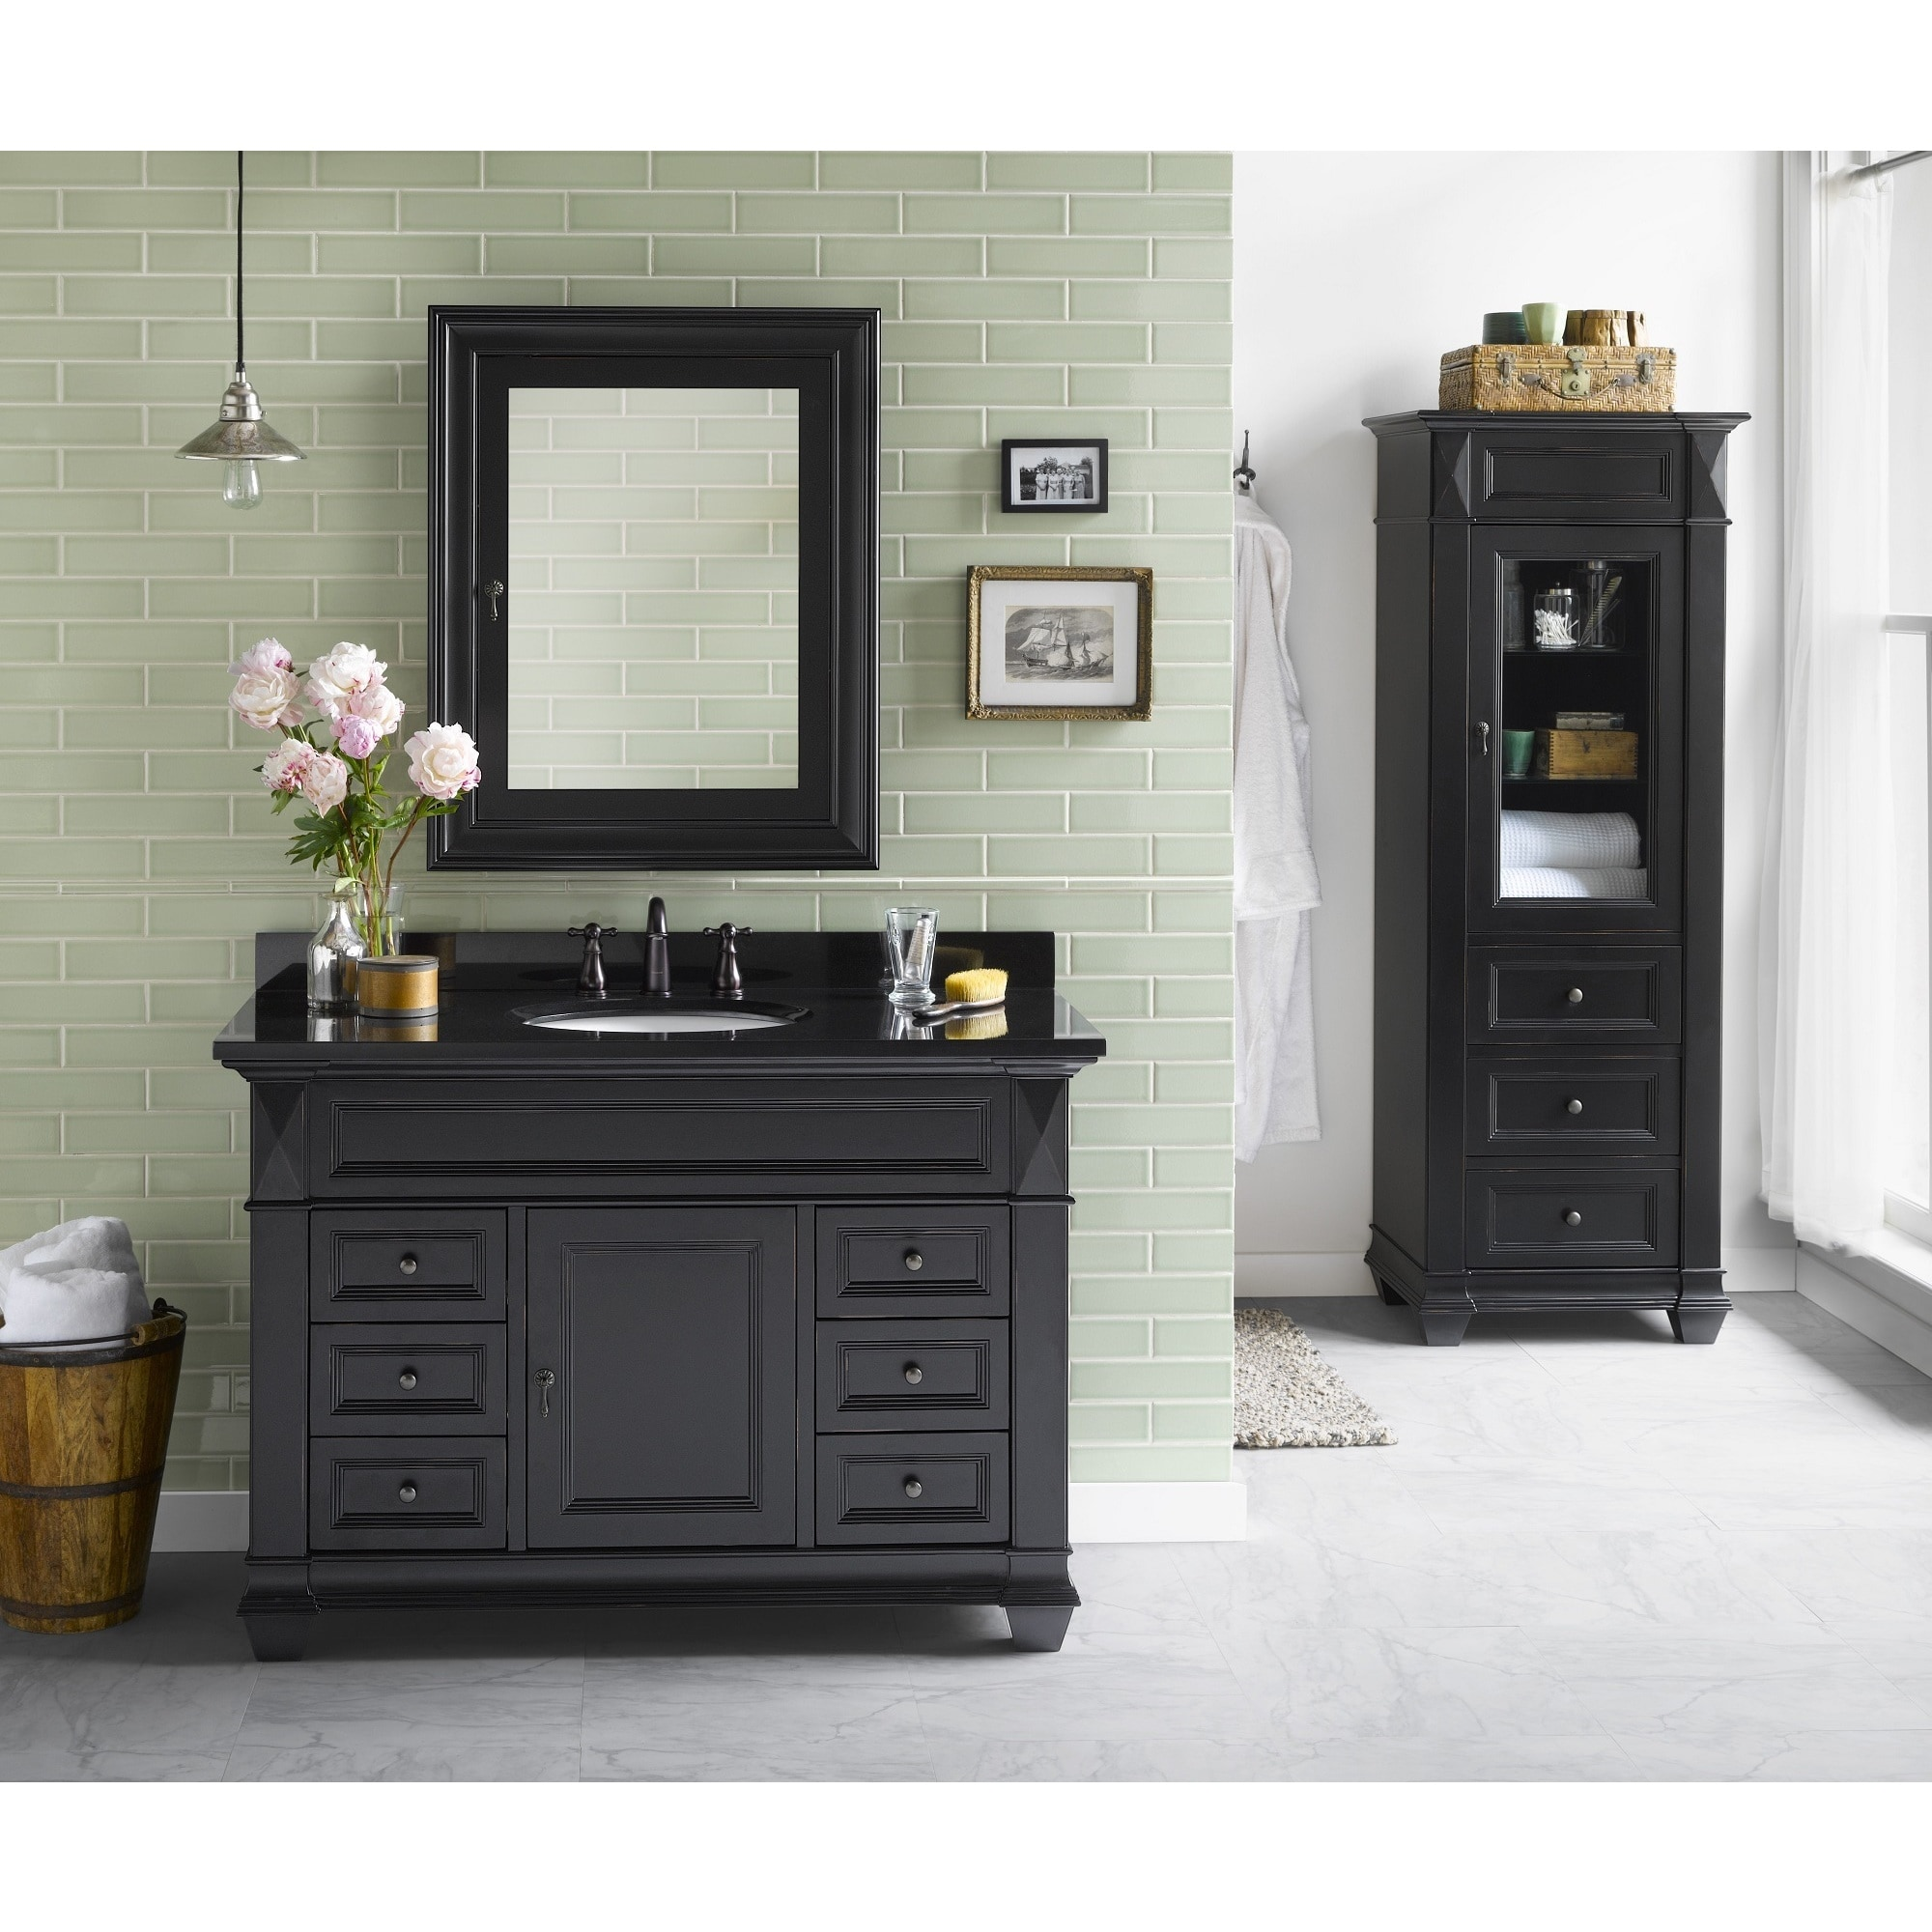 Ronbow Torino 48 Inch Bathroom Vanity Set In Antique Black Medicine Cabinet Curio Cabinet Granite Top With White Oval Sink Overstock 13984162